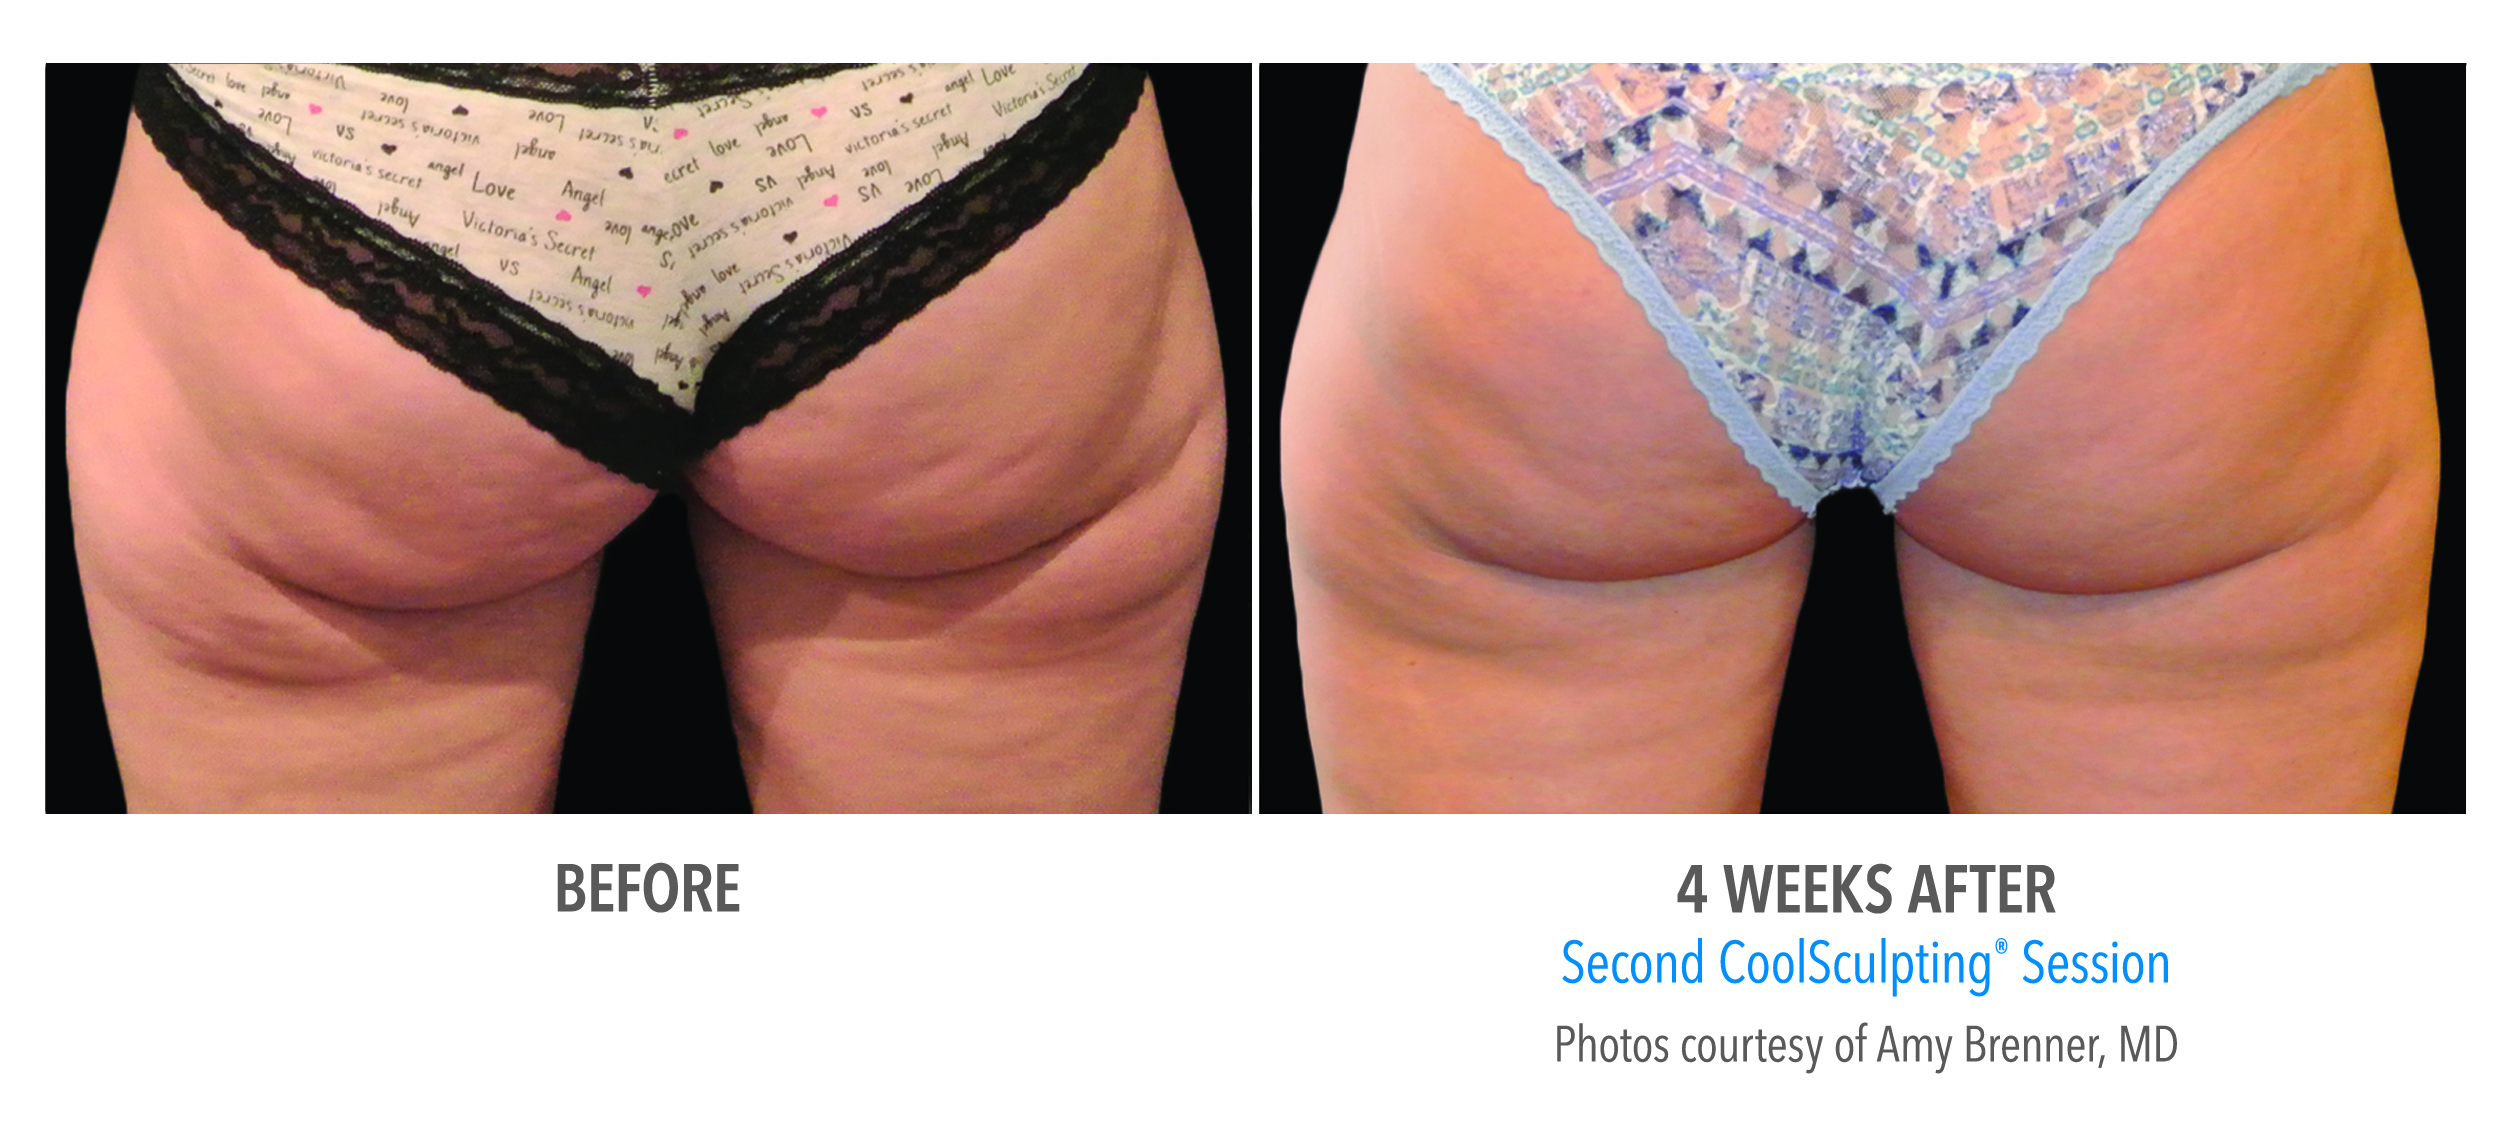 CoolSculpting buttocks fat reduction before and after image